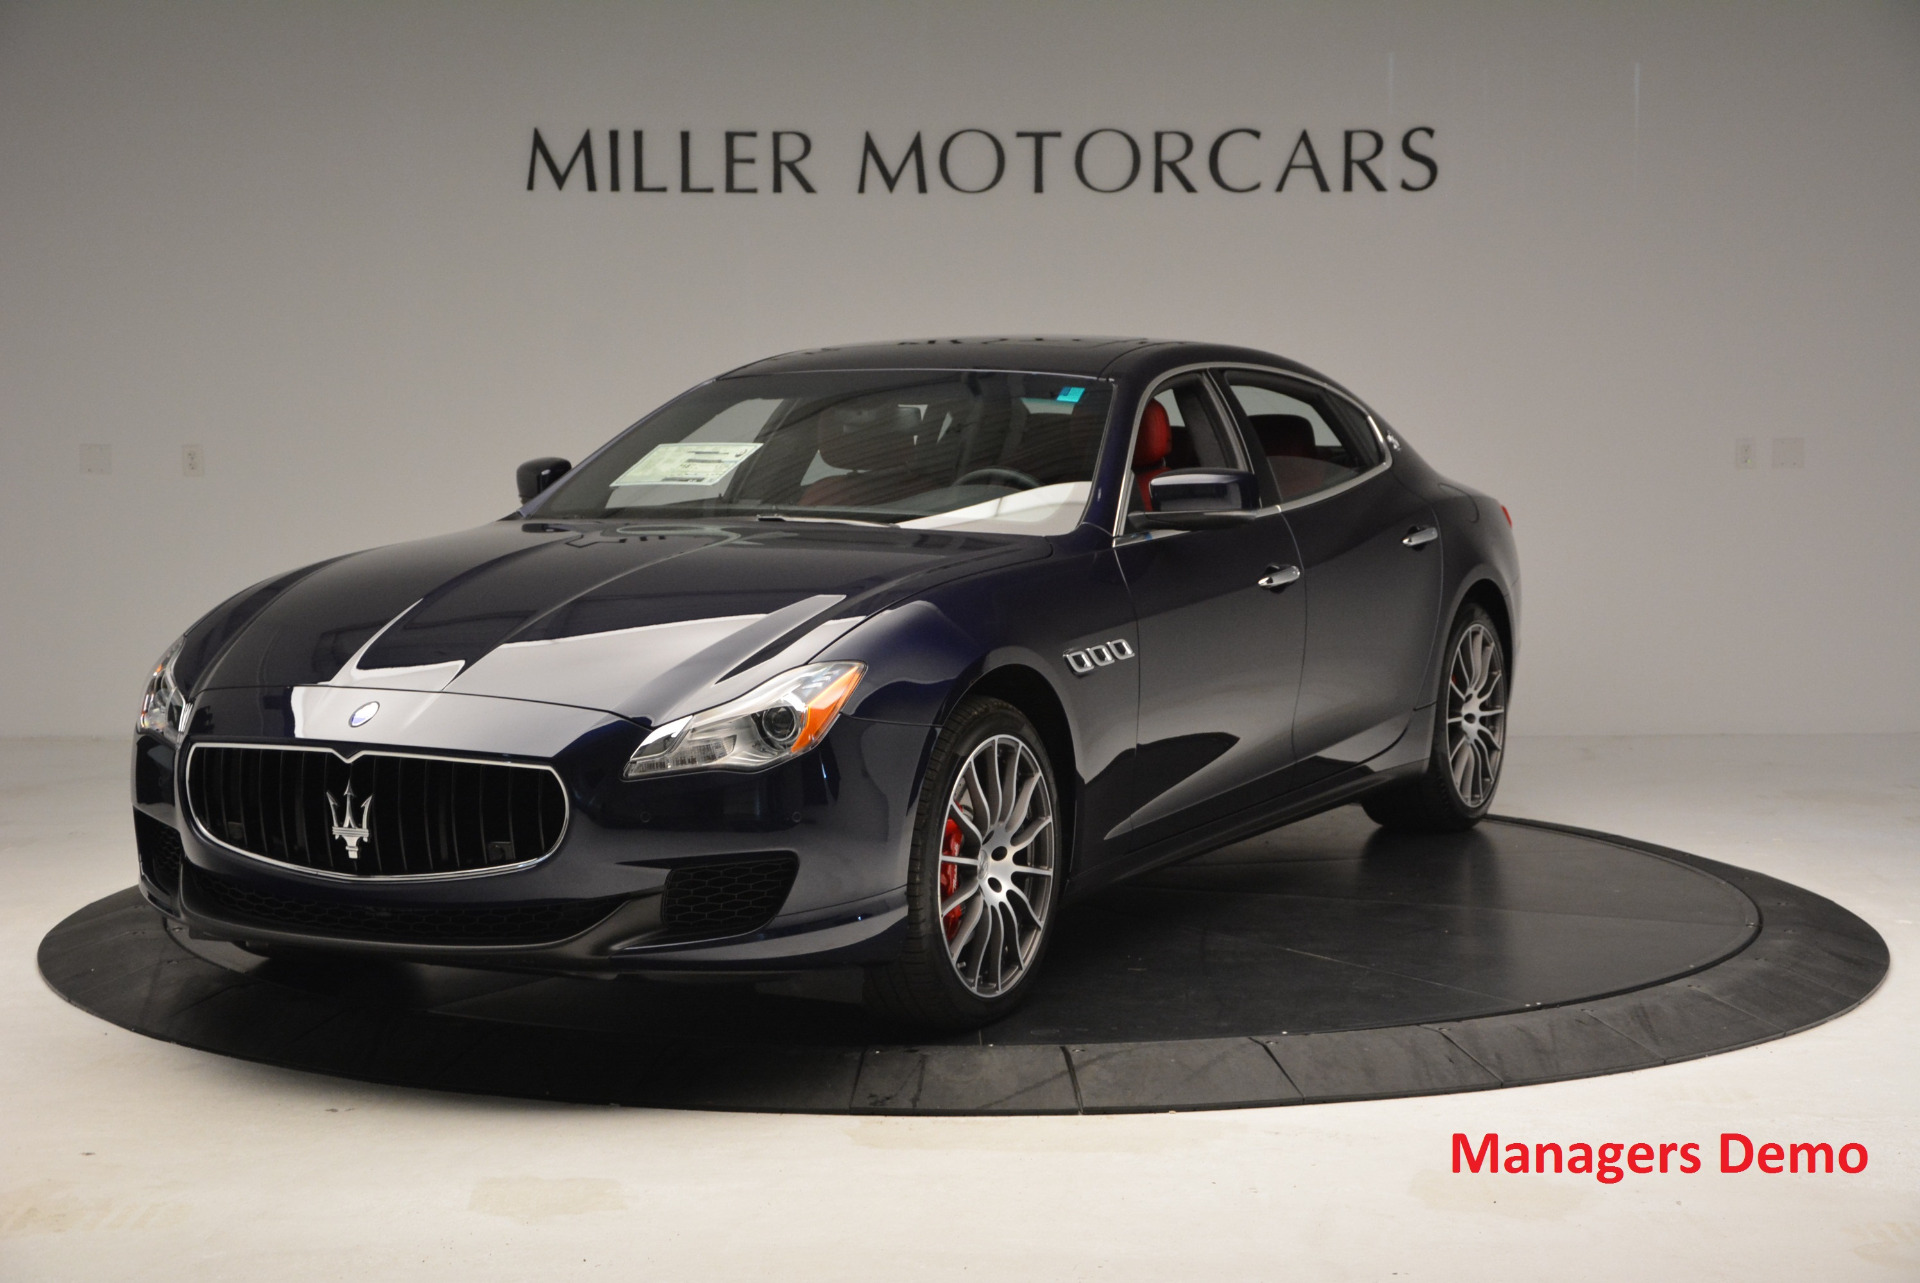 New 2016 Maserati Quattroporte S Q4  *******      DEALER'S  DEMO for sale Sold at Maserati of Greenwich in Greenwich CT 06830 1